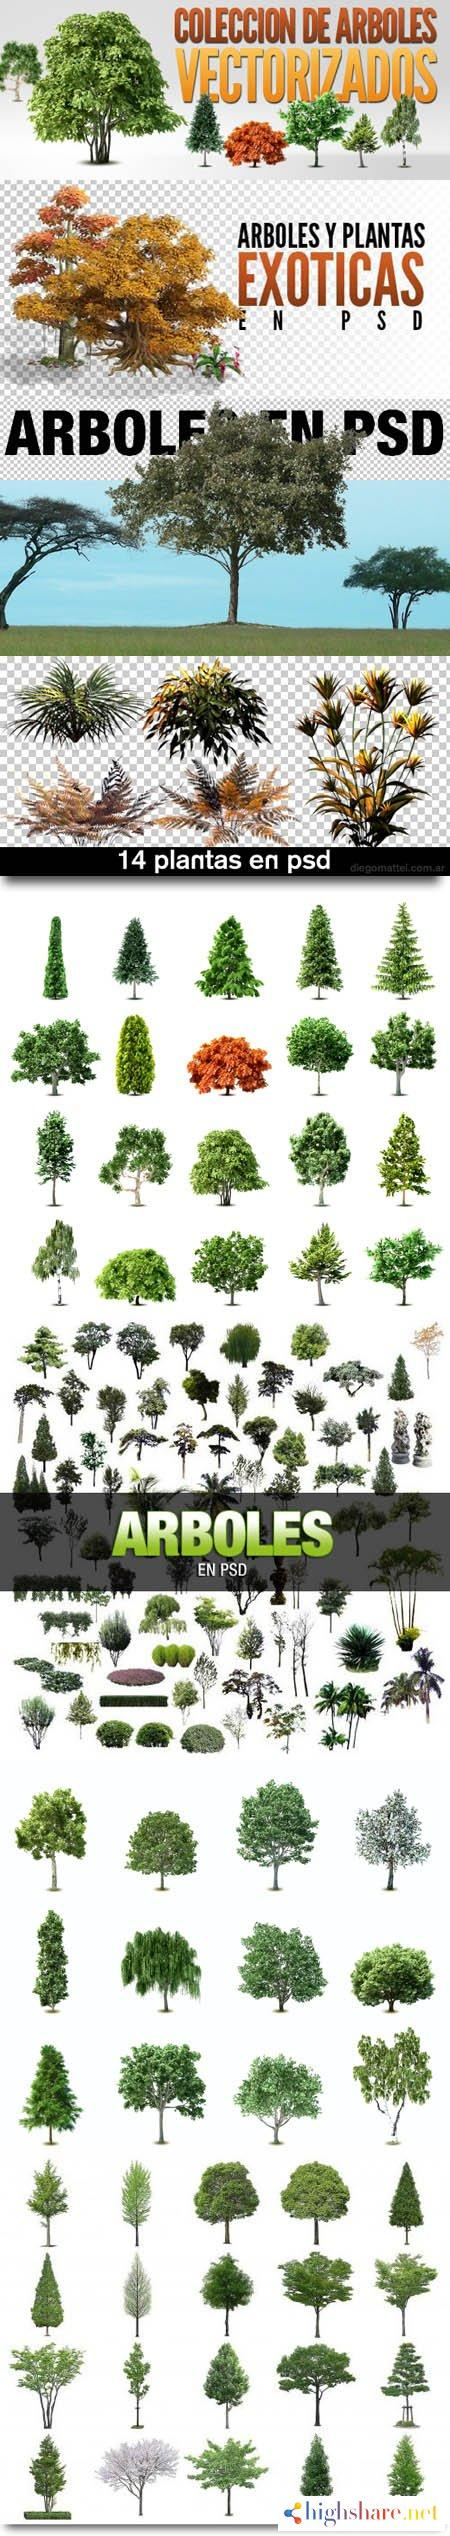 variety of trees and plants in psd eps 5f40c84512210 - Variety of Trees and Plants in PSD & EPS